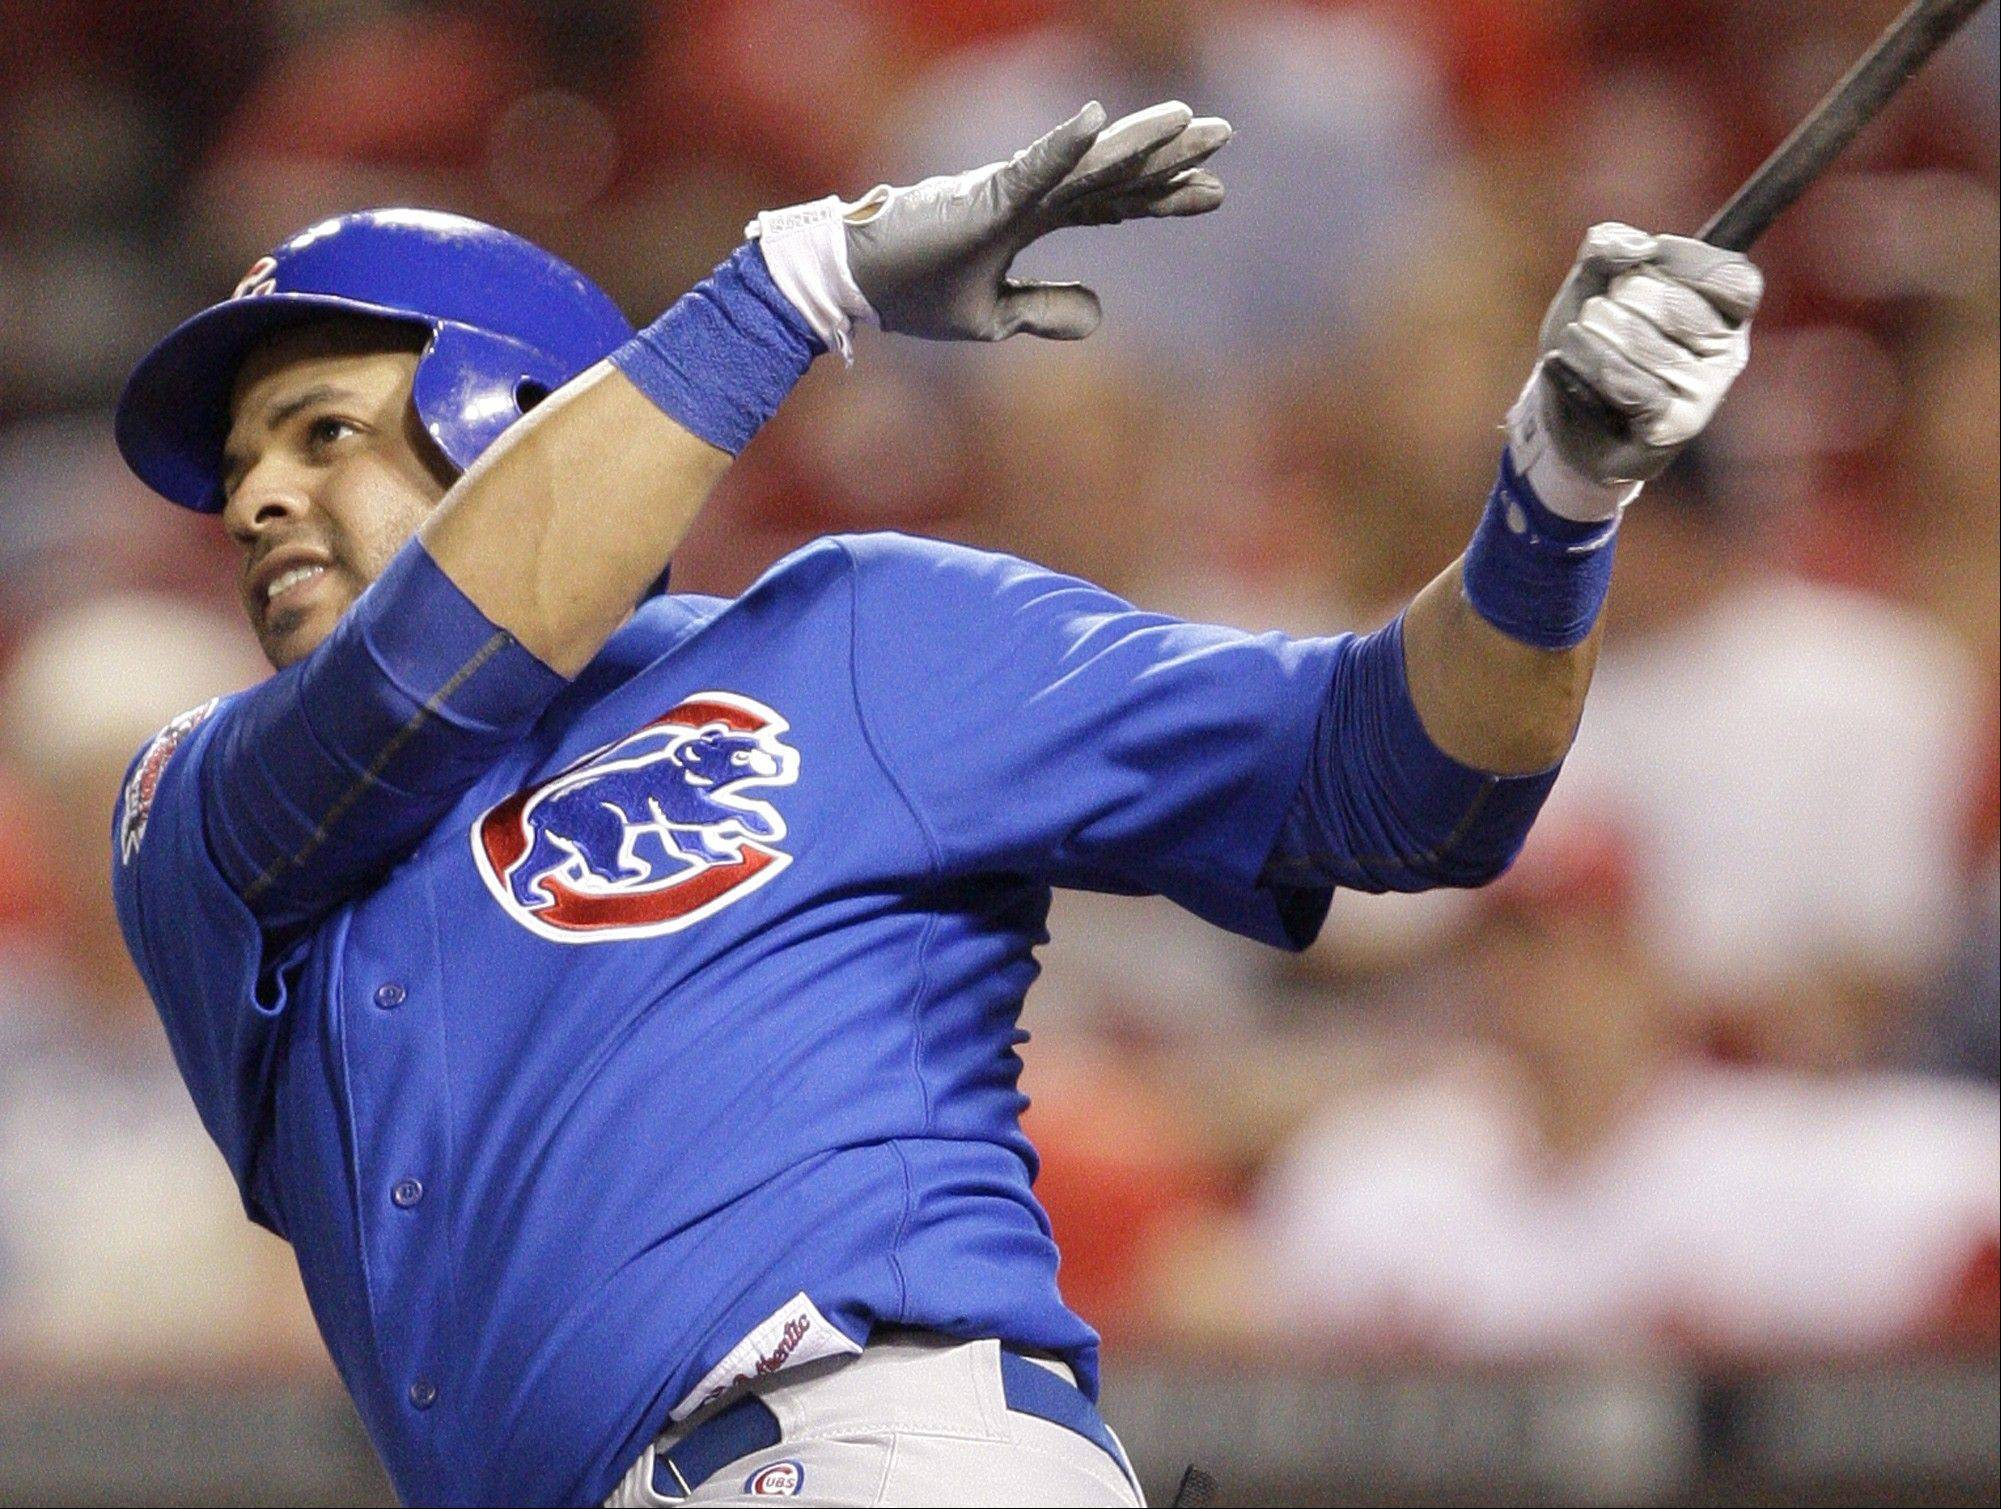 Cubs power-hitting third baseman Aramis Ramirez will file for free agency at the end of the season.